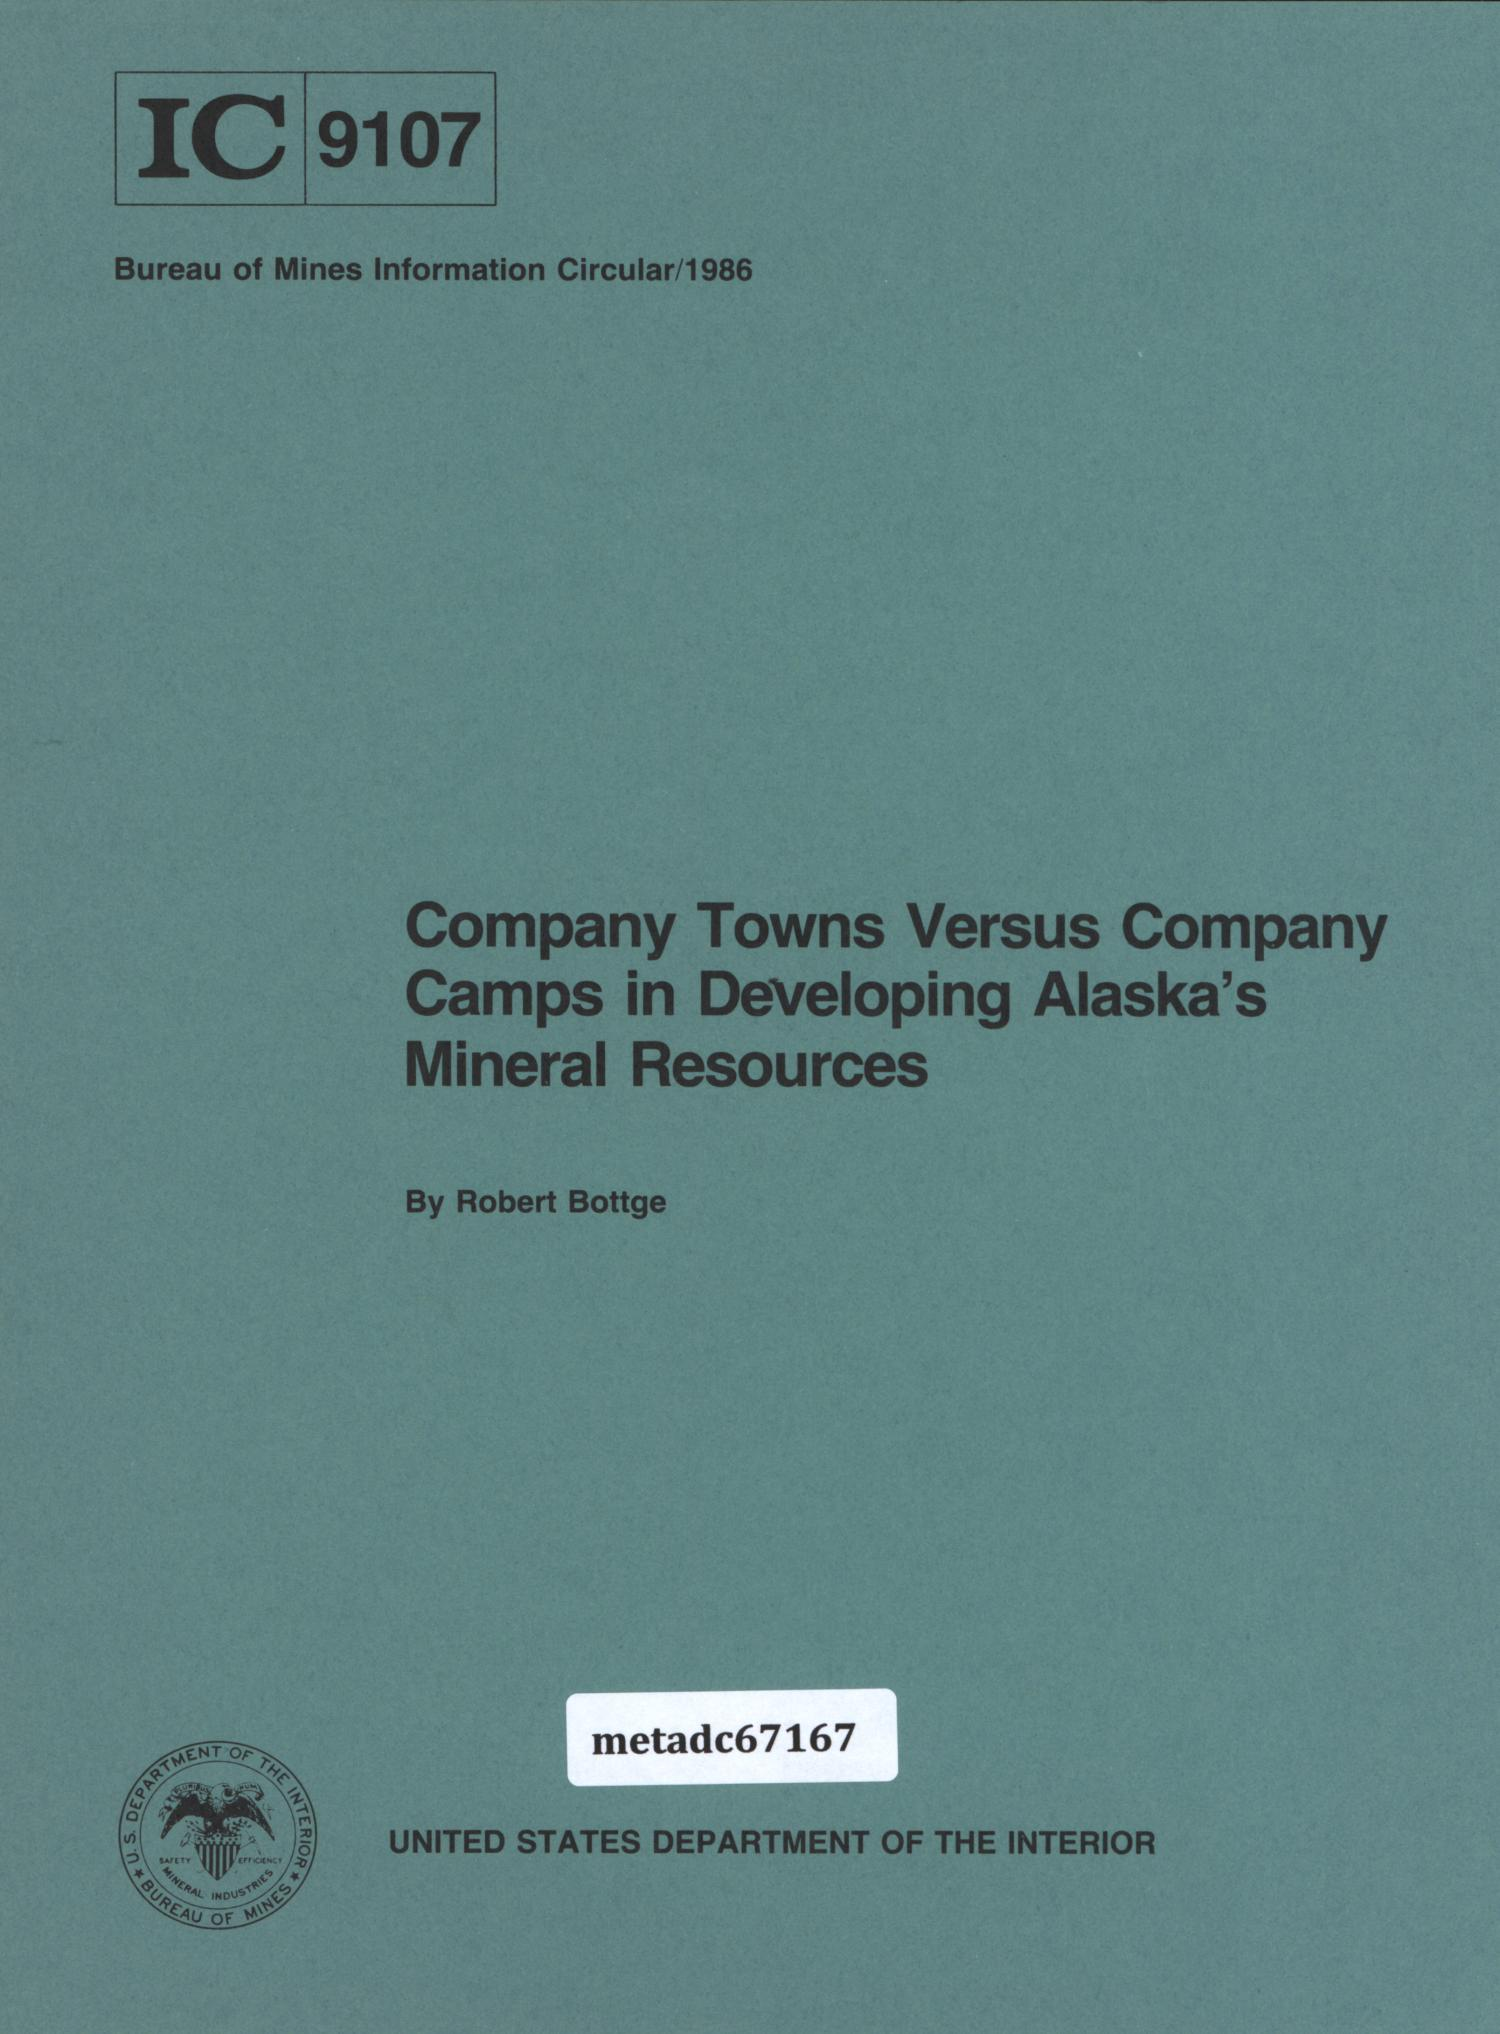 Company Towns Versus Company Camps in Developing Alaska's Mineral Resources                                                                                                      Front Cover